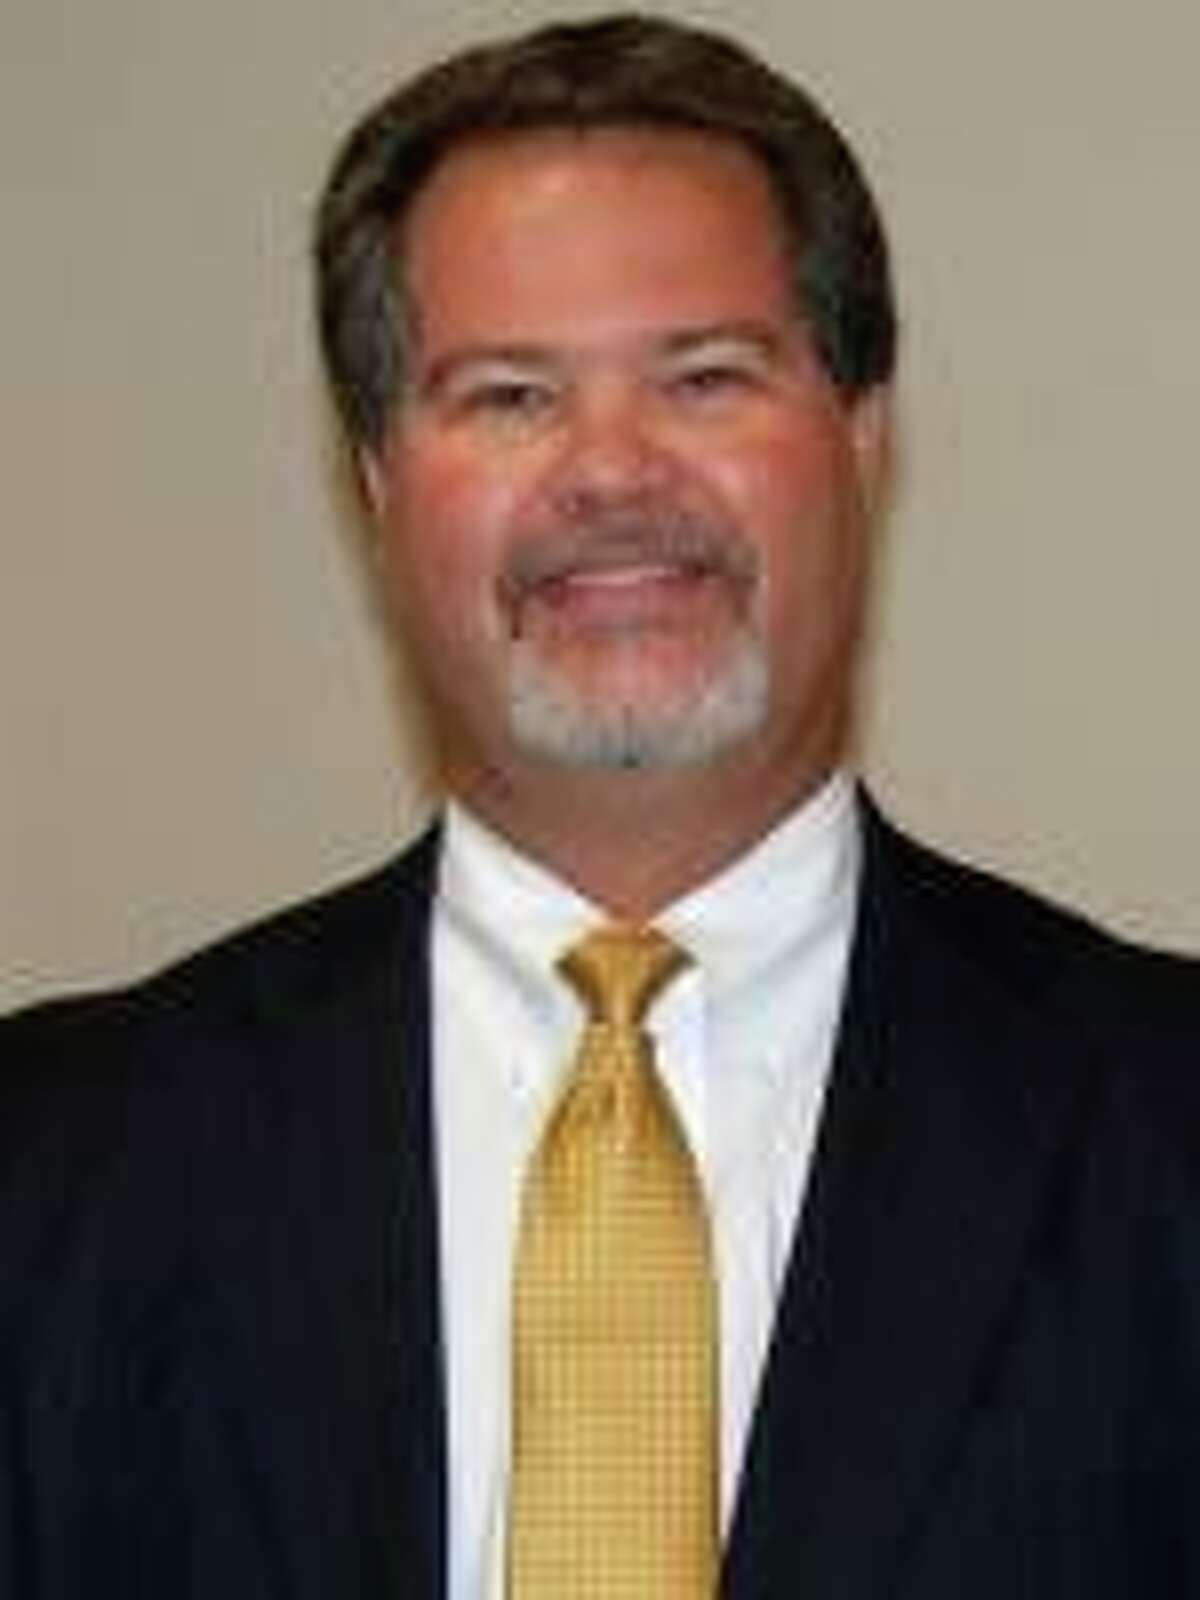 Current second-in-command of the township, John Powers was one of three finalists for the general manager/president job in The Woodlands. Long-time GM/President Don Norrell is set to retire on Sept. 6. The person hired to replace Norrell, Jeff Jones, begins work on Aug. 31. Powers was in the final three with Jones and Jose Madrigal following three rounds of interviews.